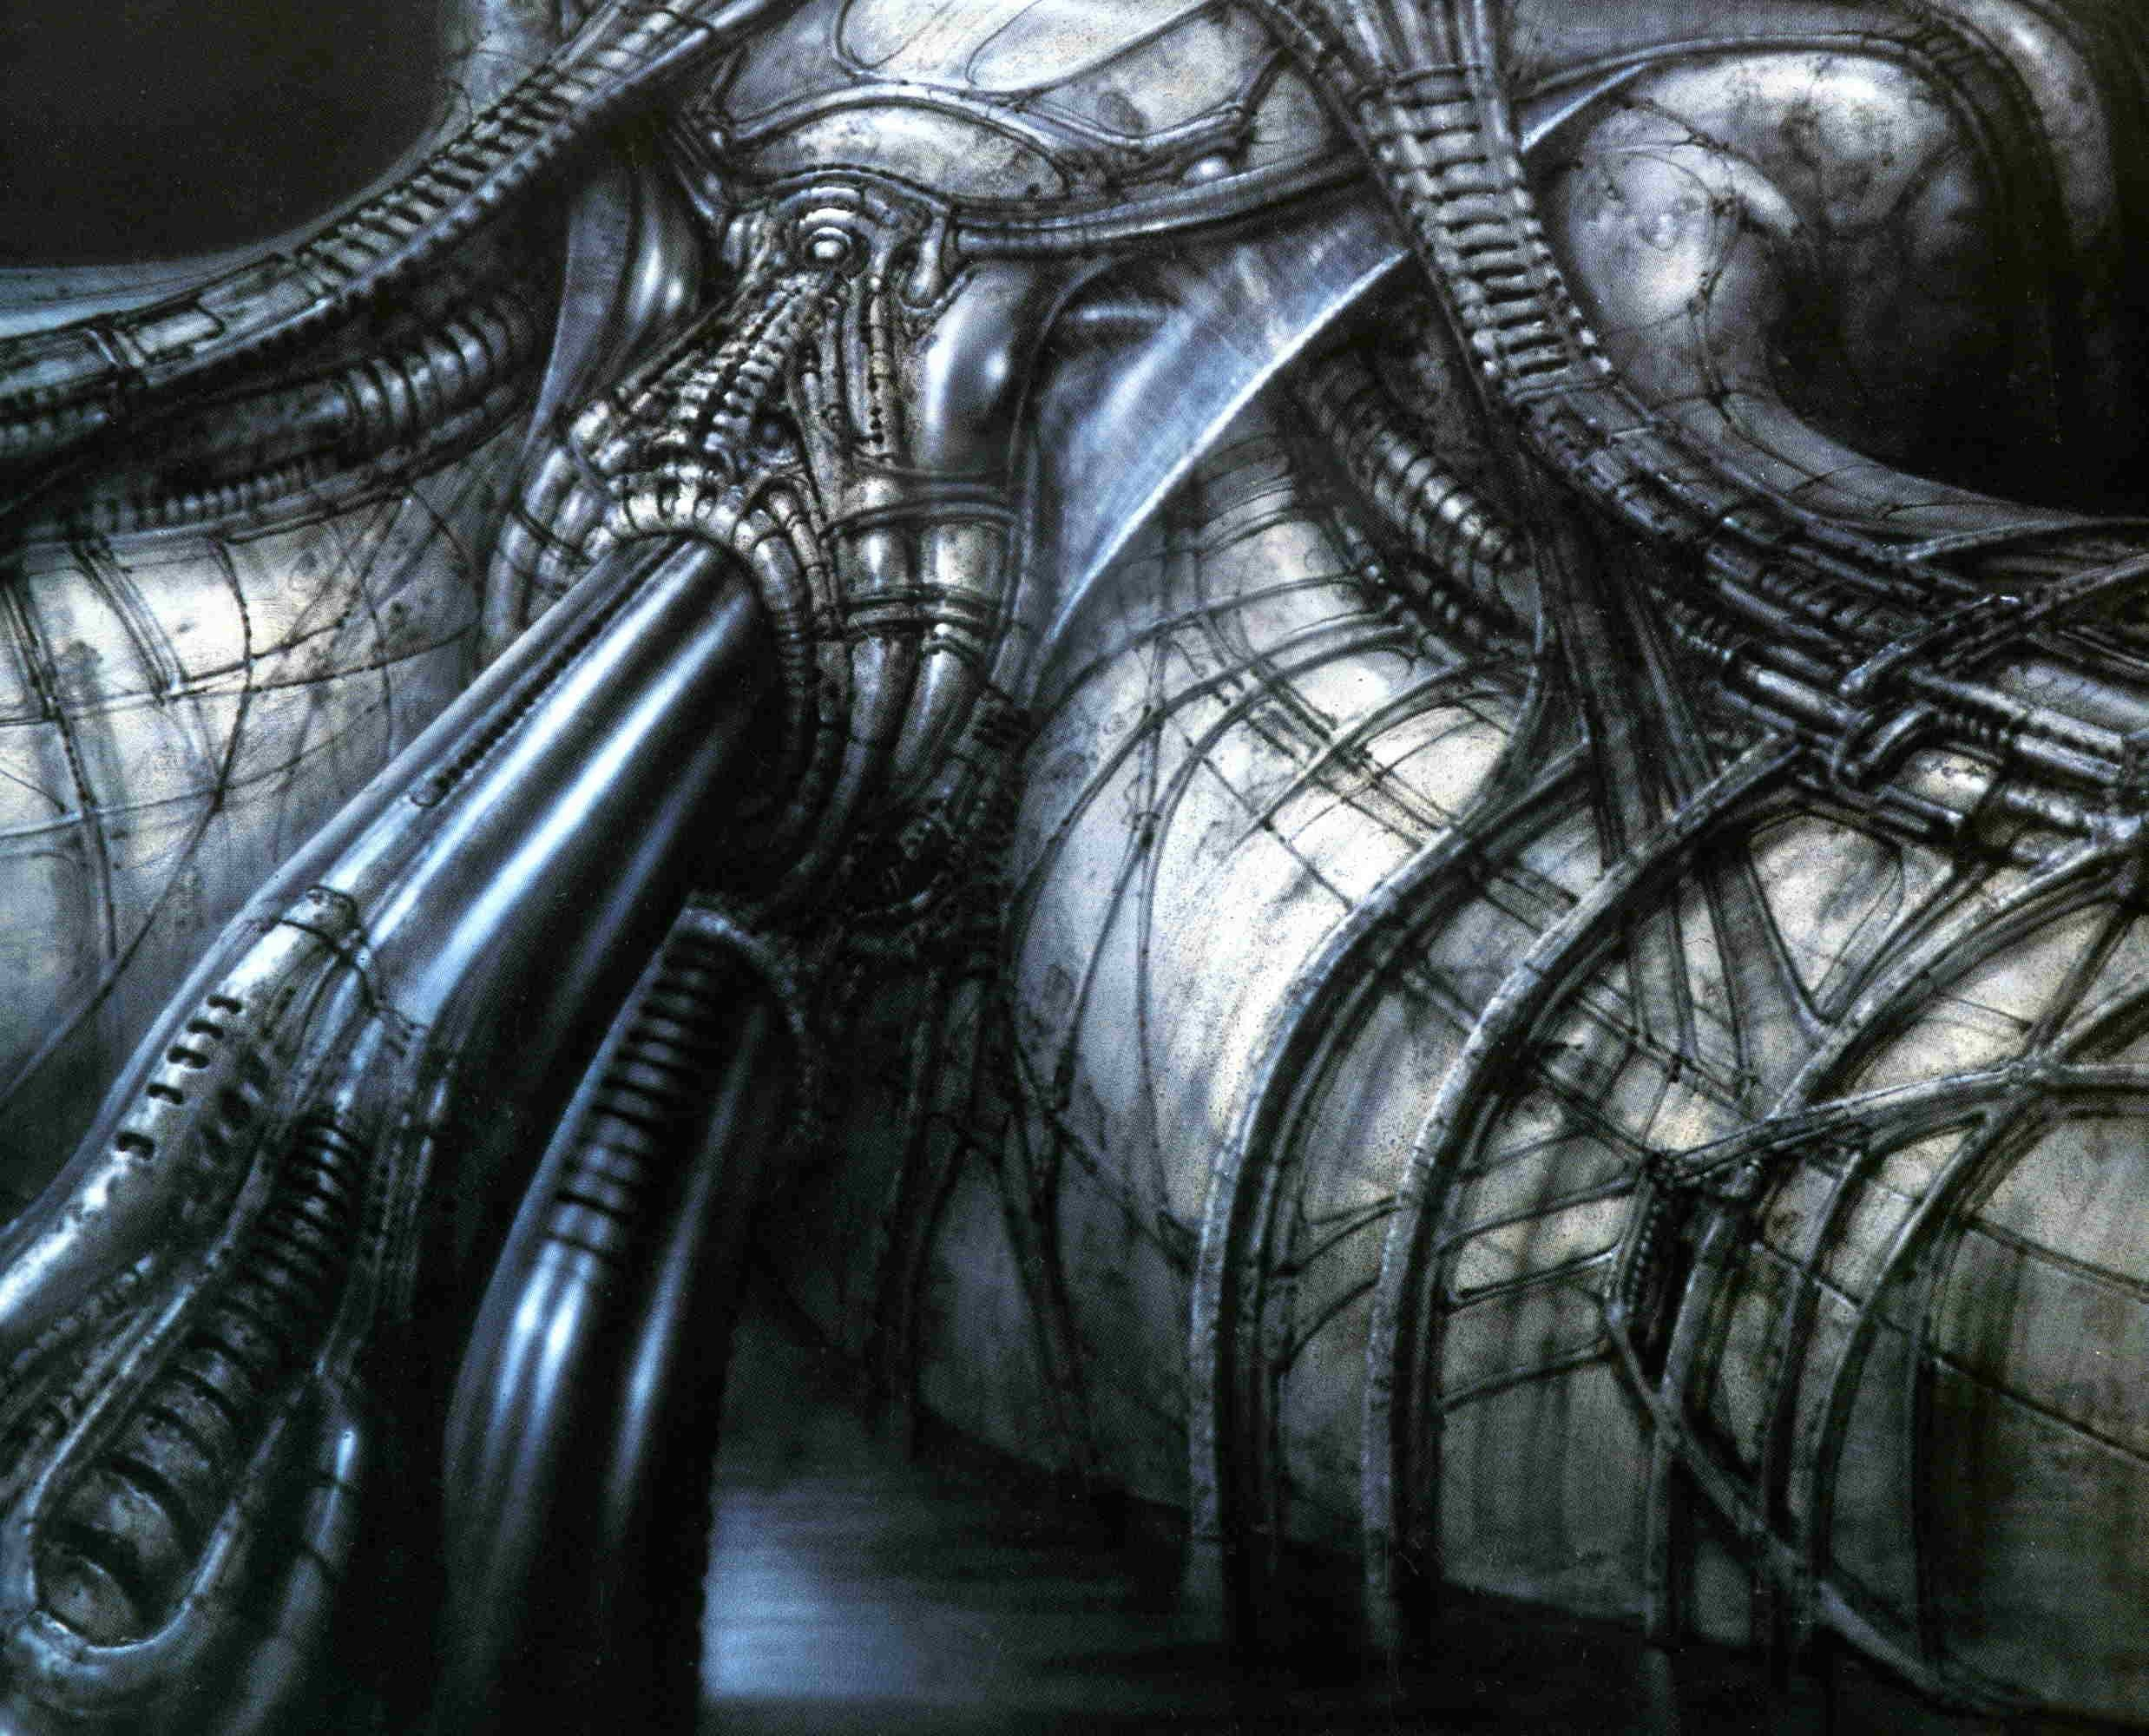 prometheus hd wallpaper iphone